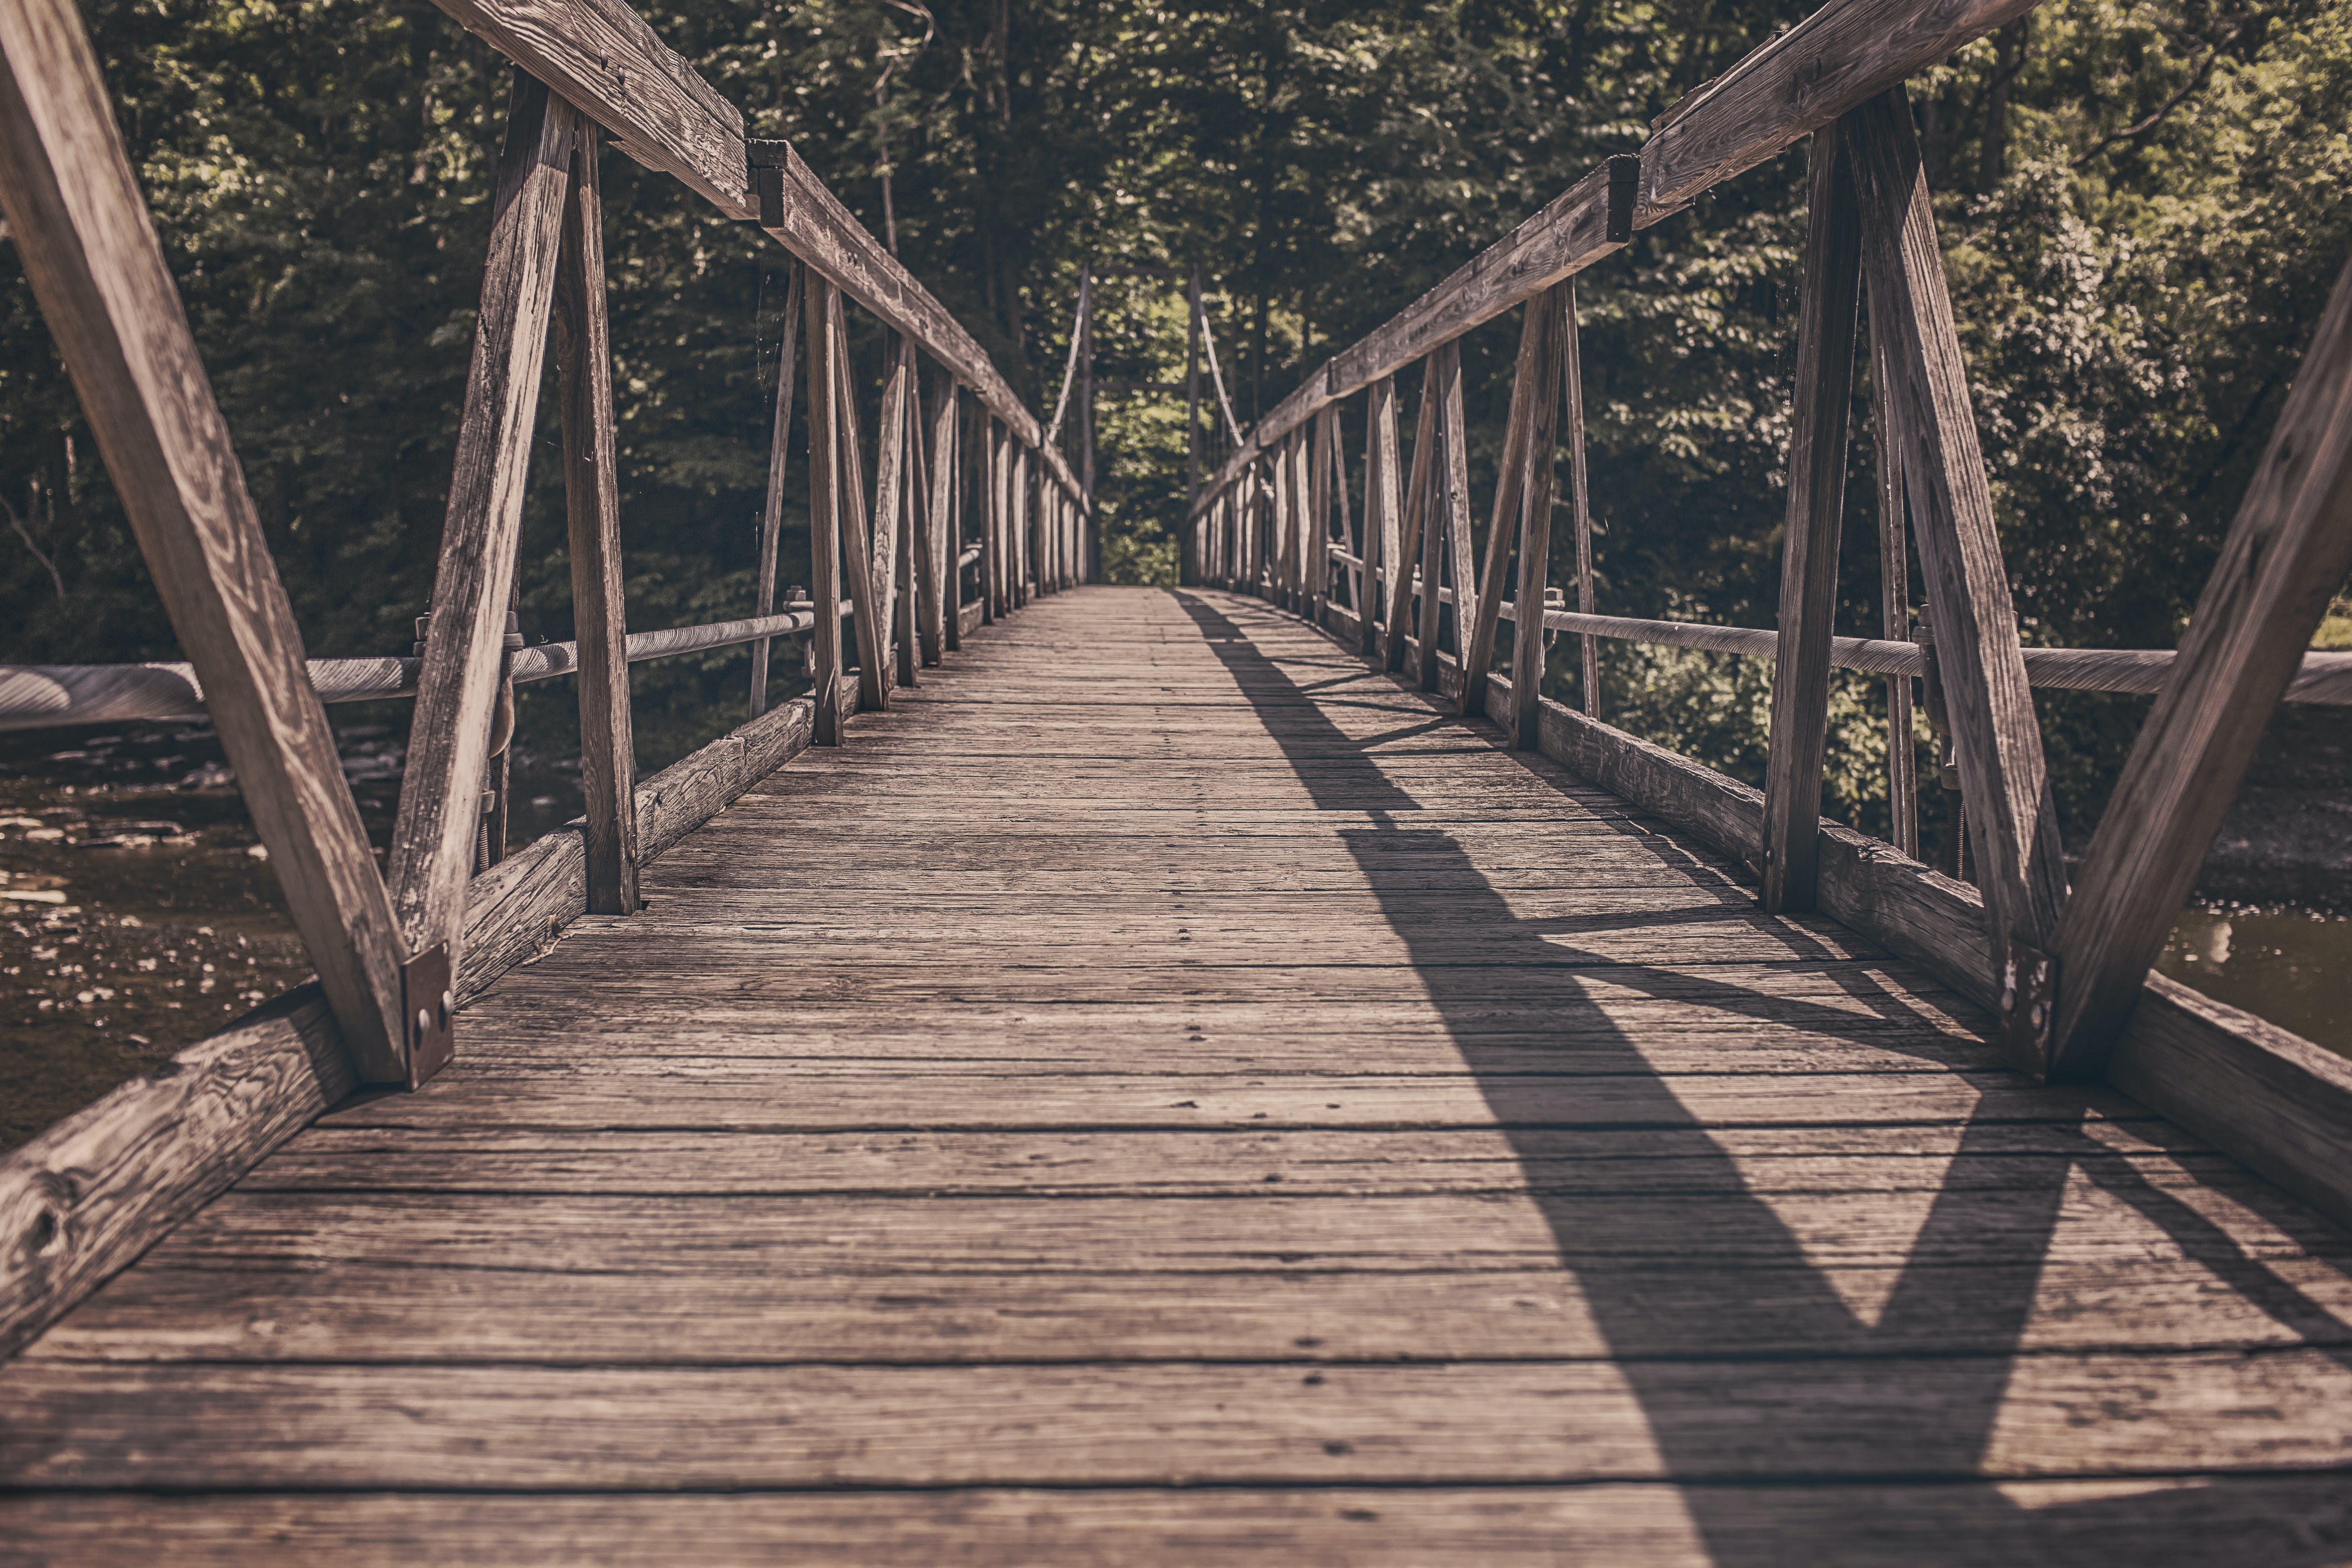 Alley Photography of Brown Wooden Bridge